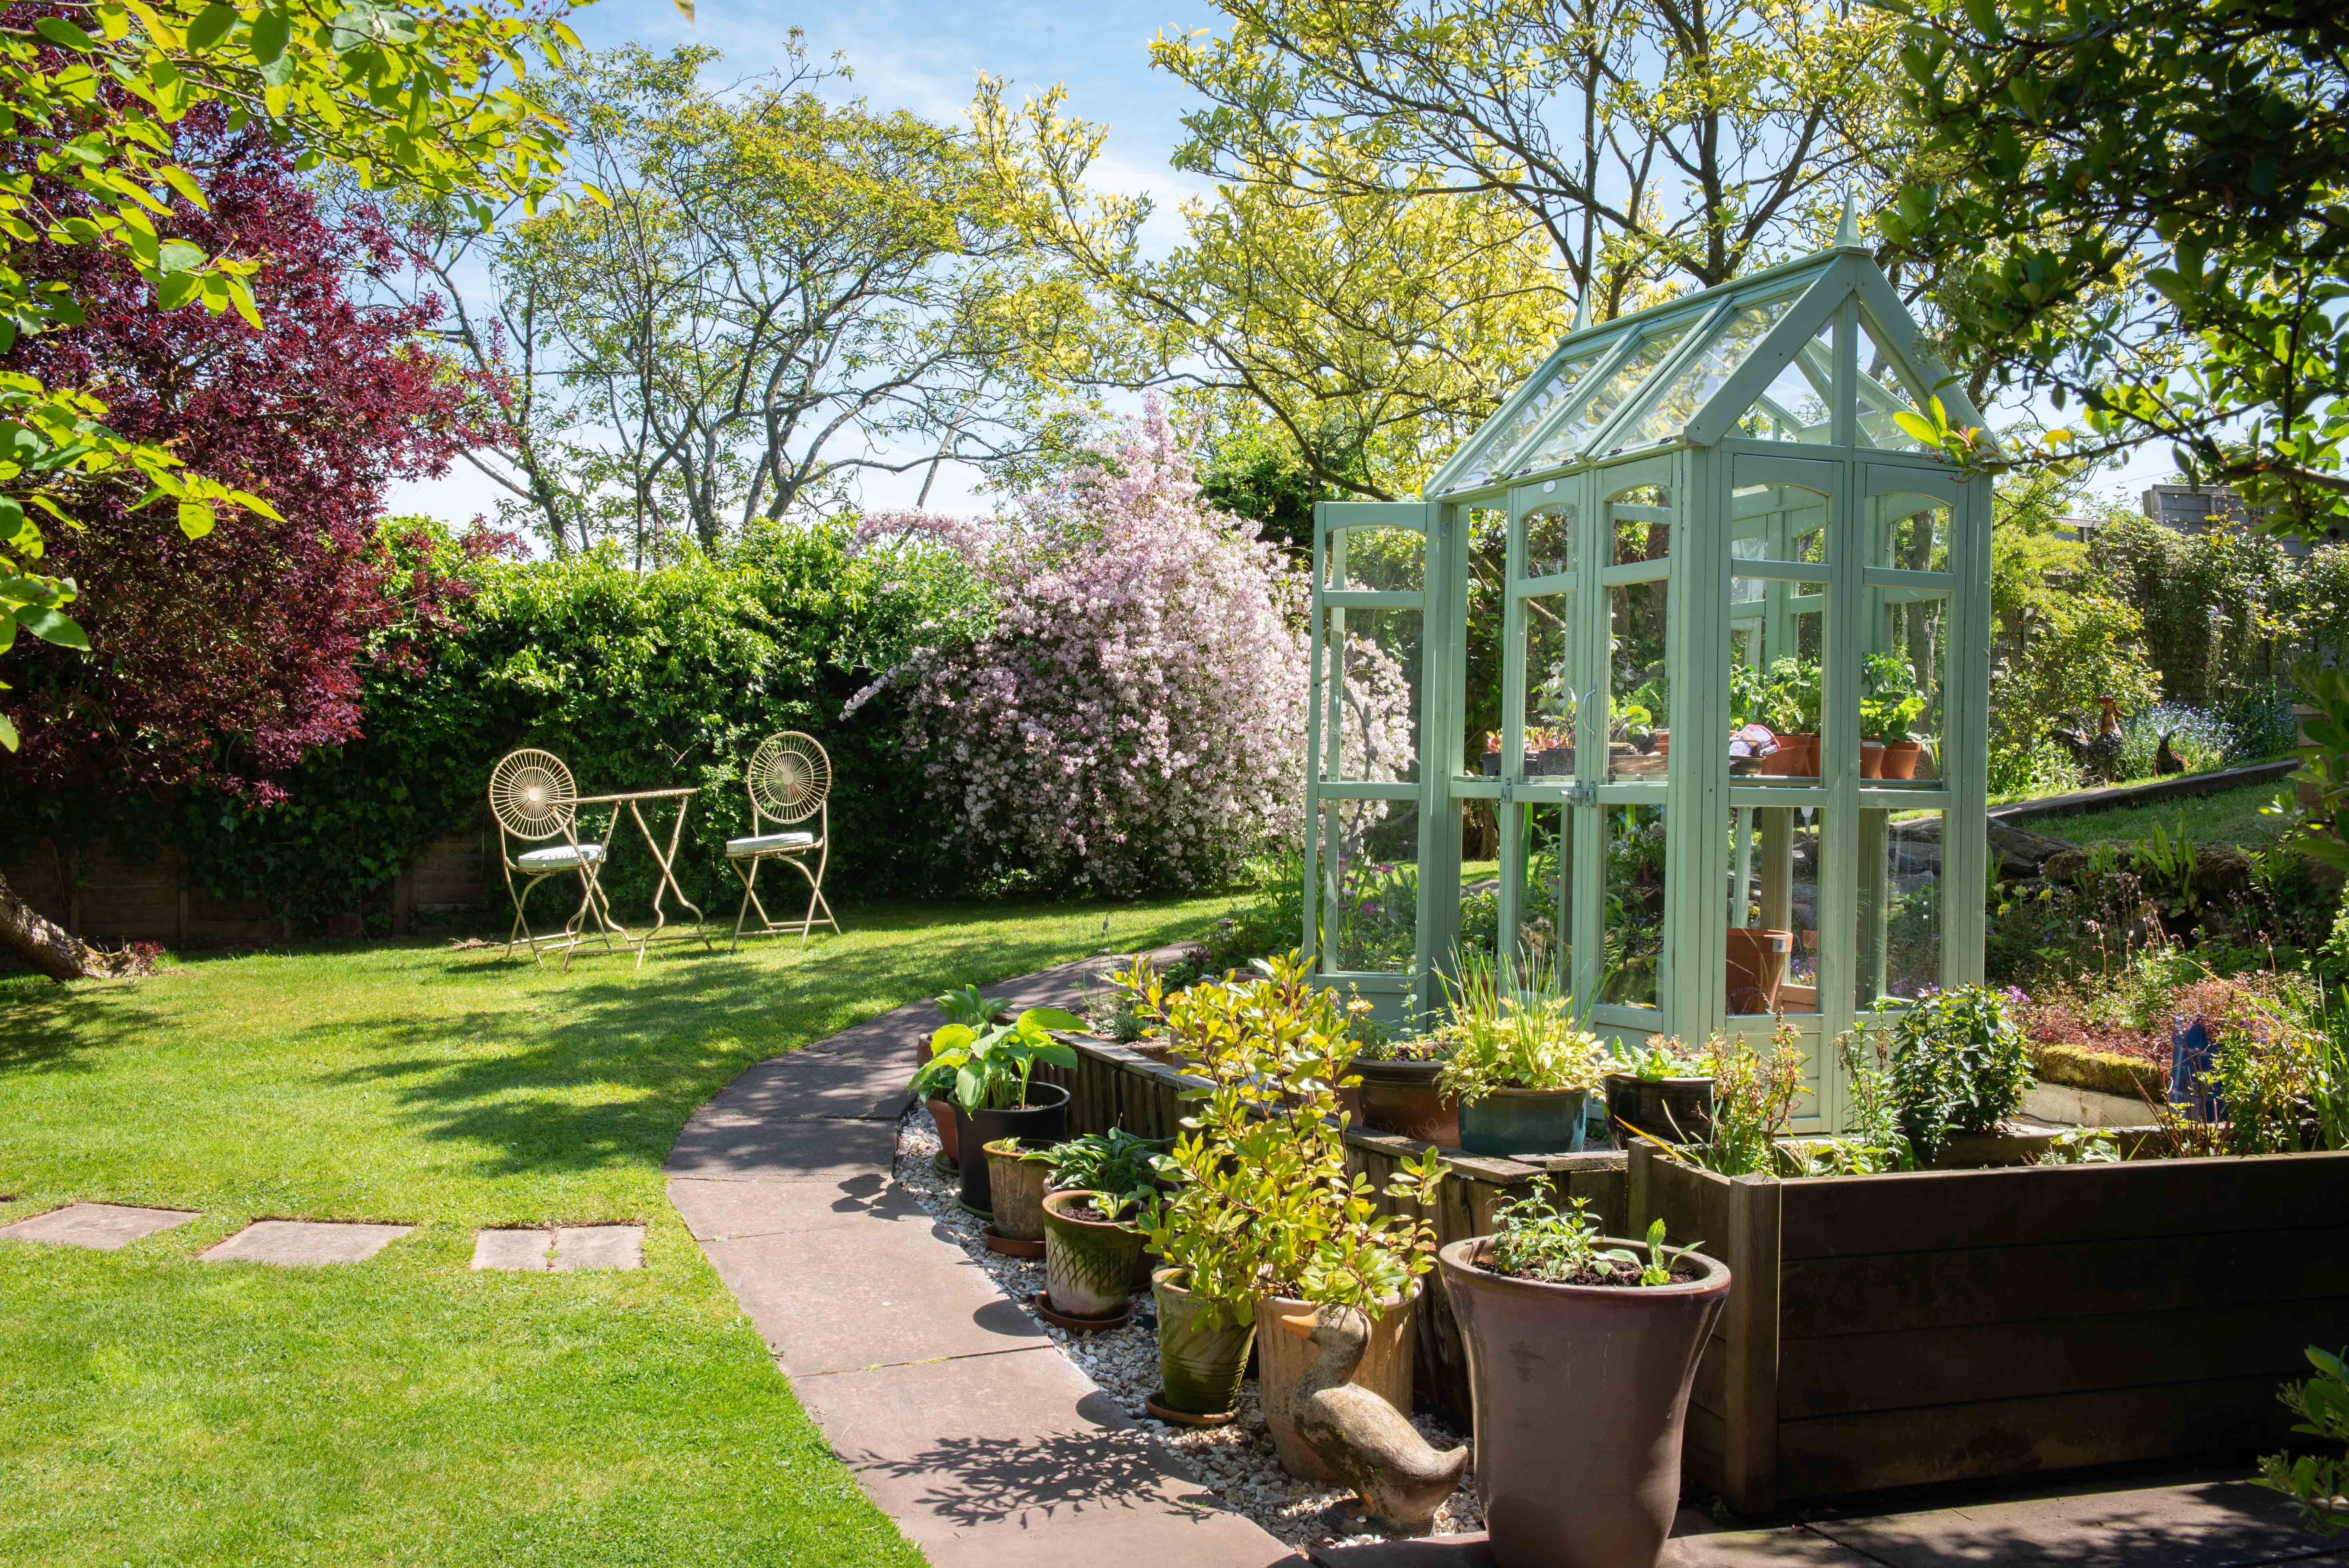 Victorian Walkaround Greenhouse (With images) | Greenhouse ...